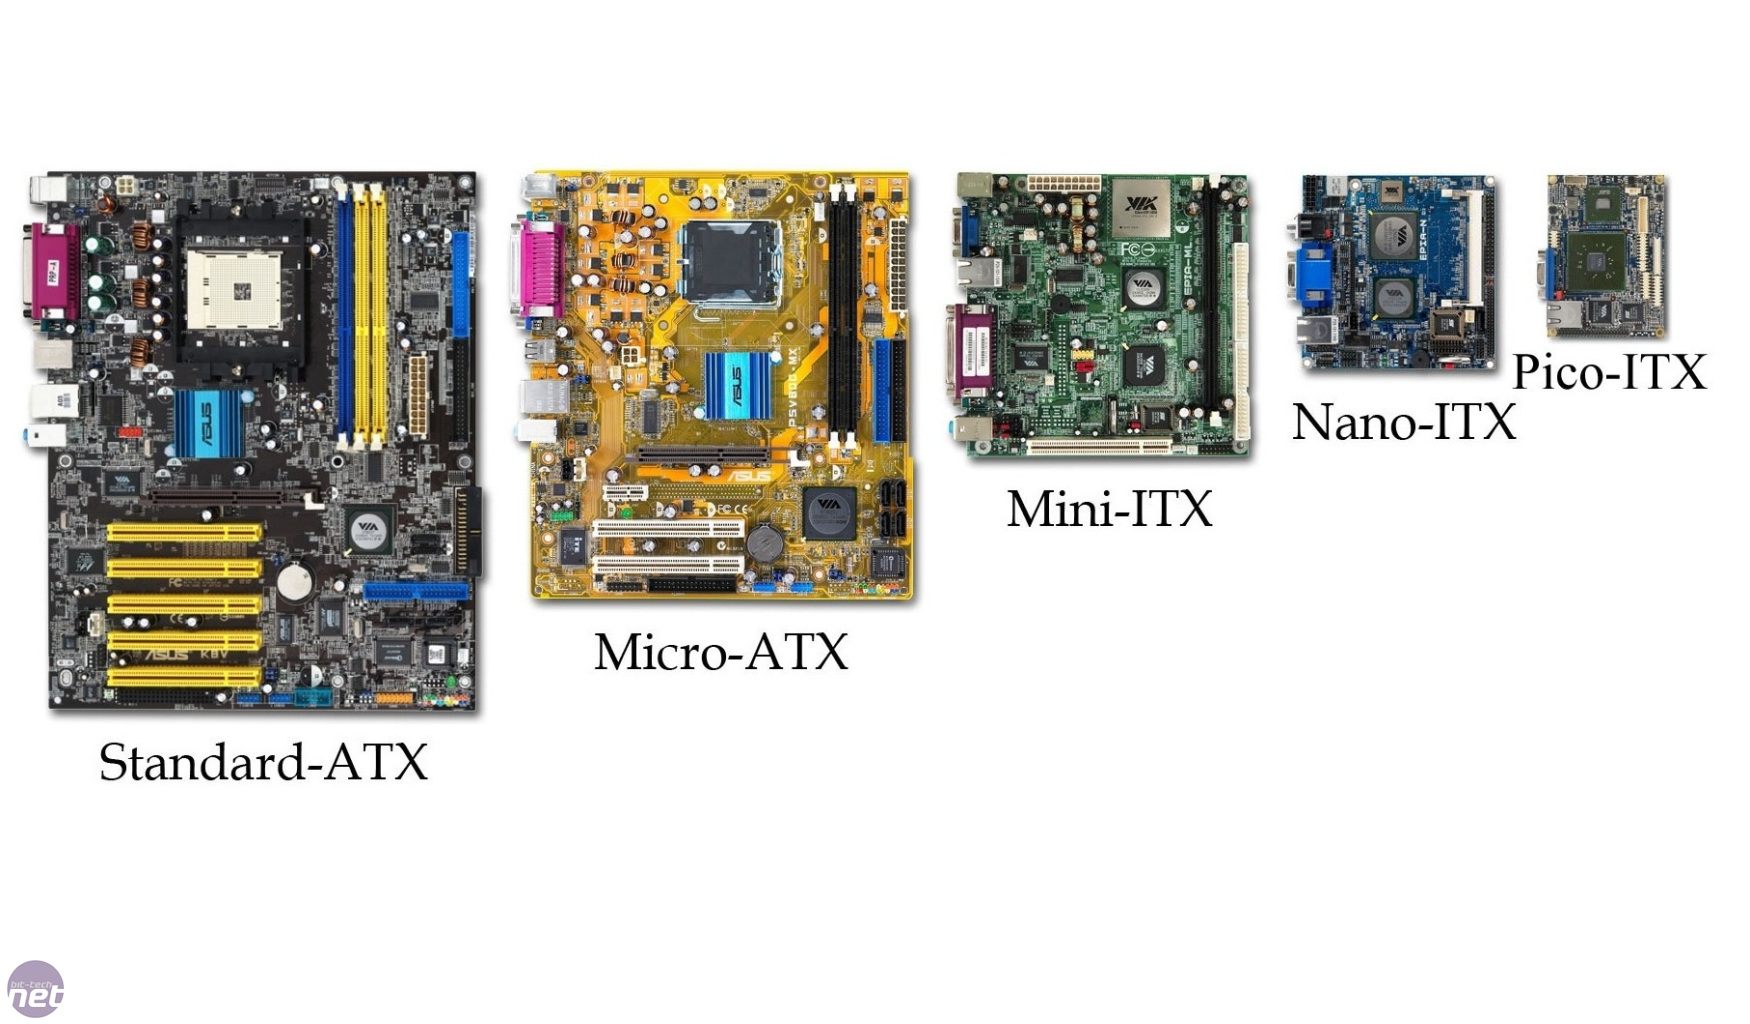 pico btx motherboard diagram blank heart worksheet should size be the new battleground in